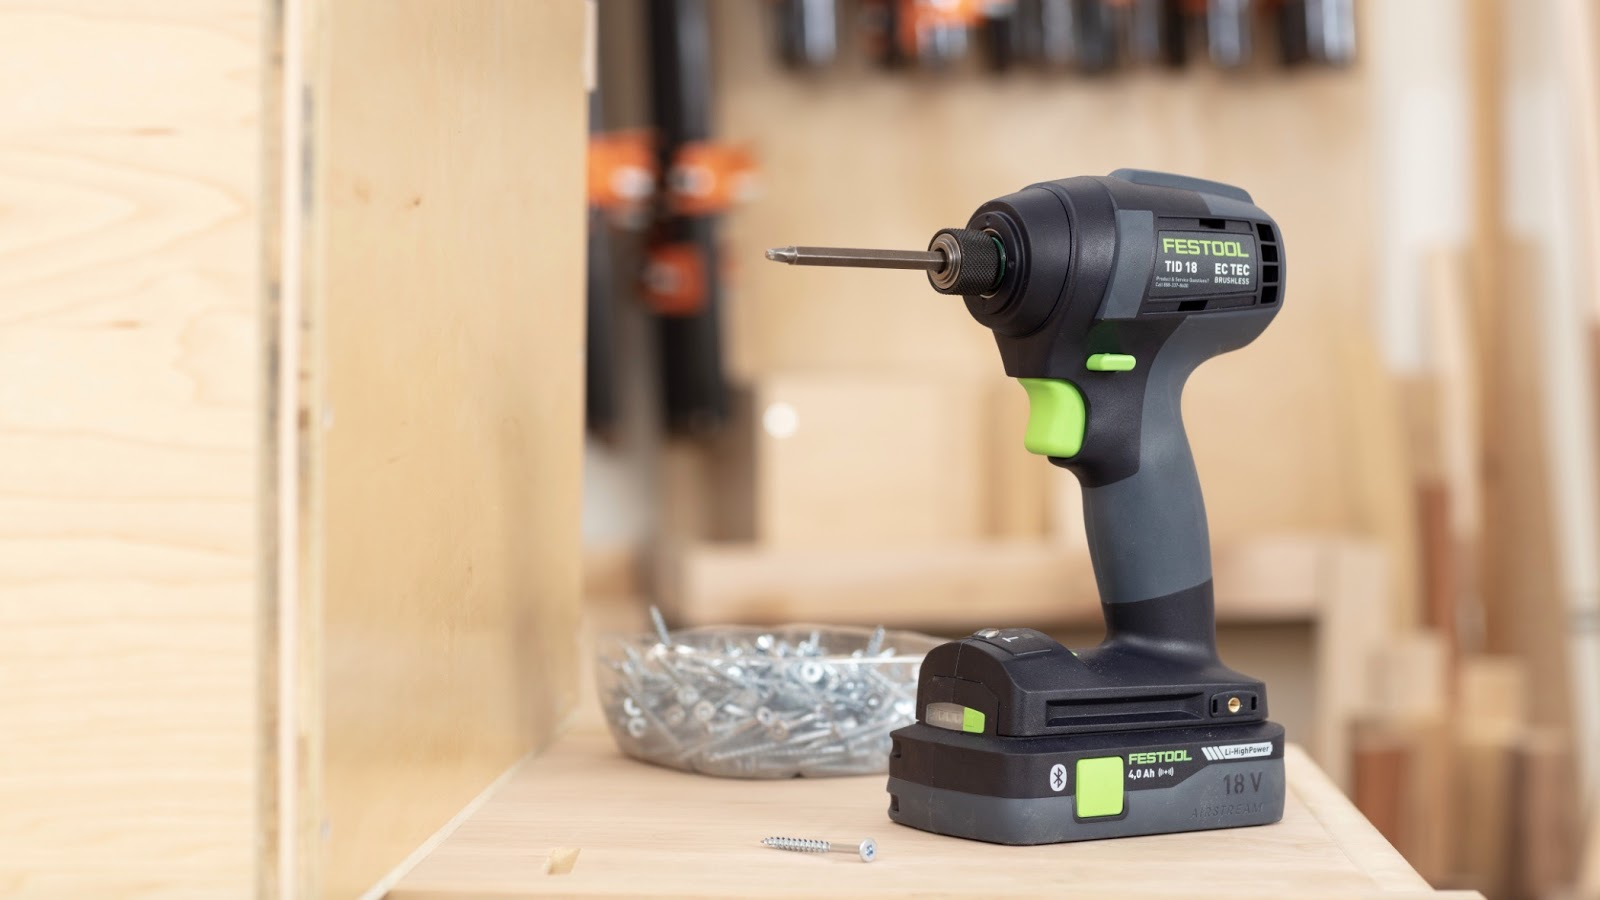 The Festool TID 18 is a Smarter Kind of Cordless Impact Driver